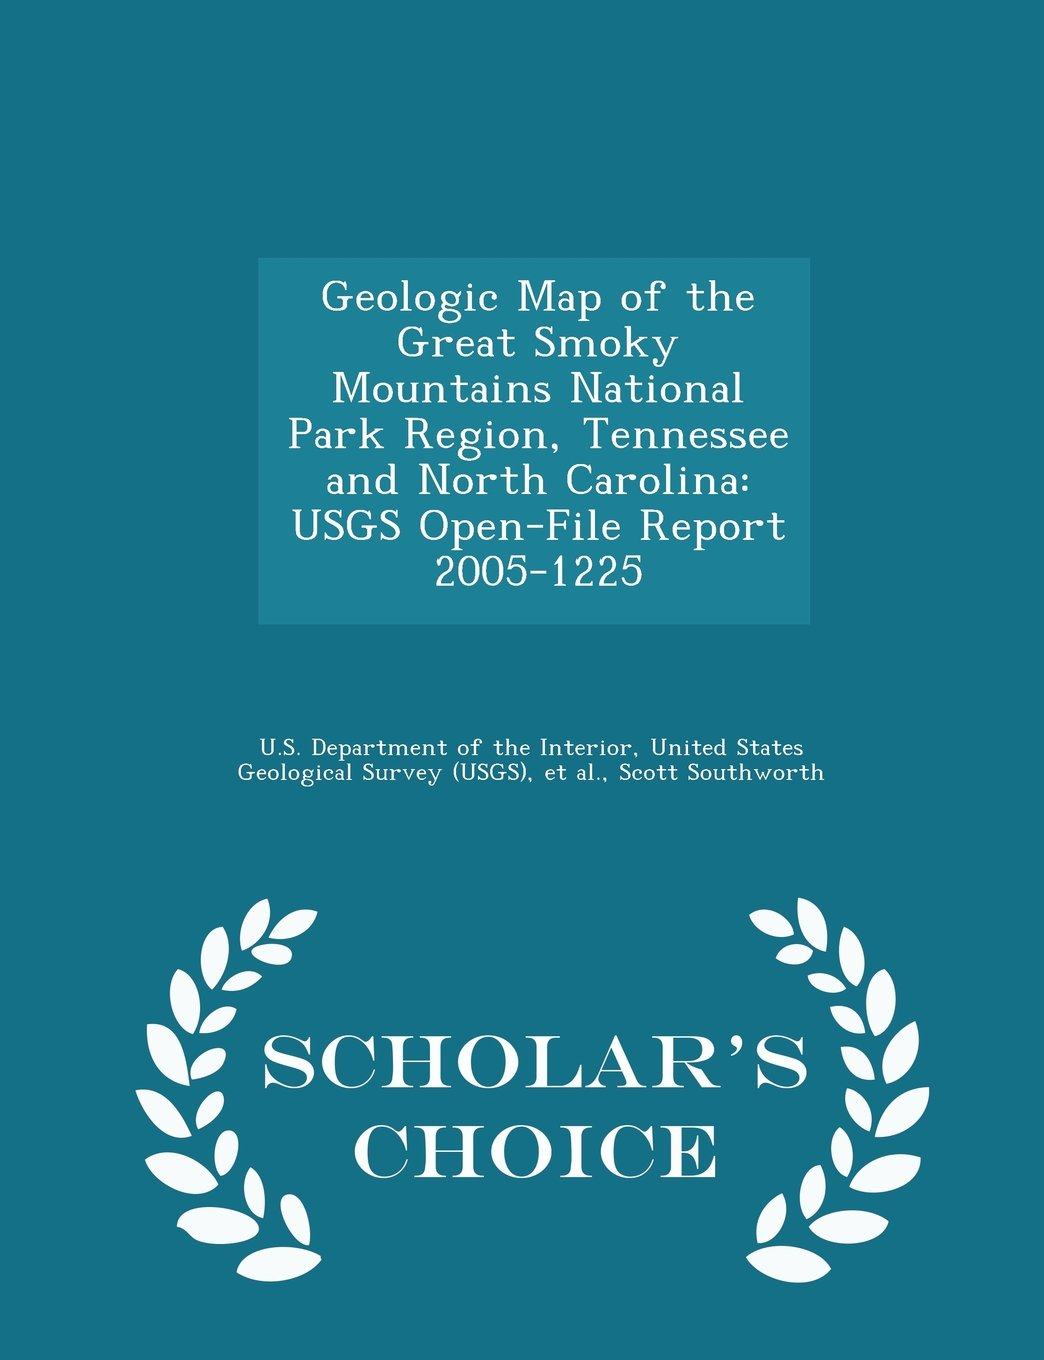 Read Online Geologic Map of the Great Smoky Mountains National Park Region, Tennessee and North Carolina: USGS Open-File Report 2005-1225 - Scholar's Choice Edition PDF